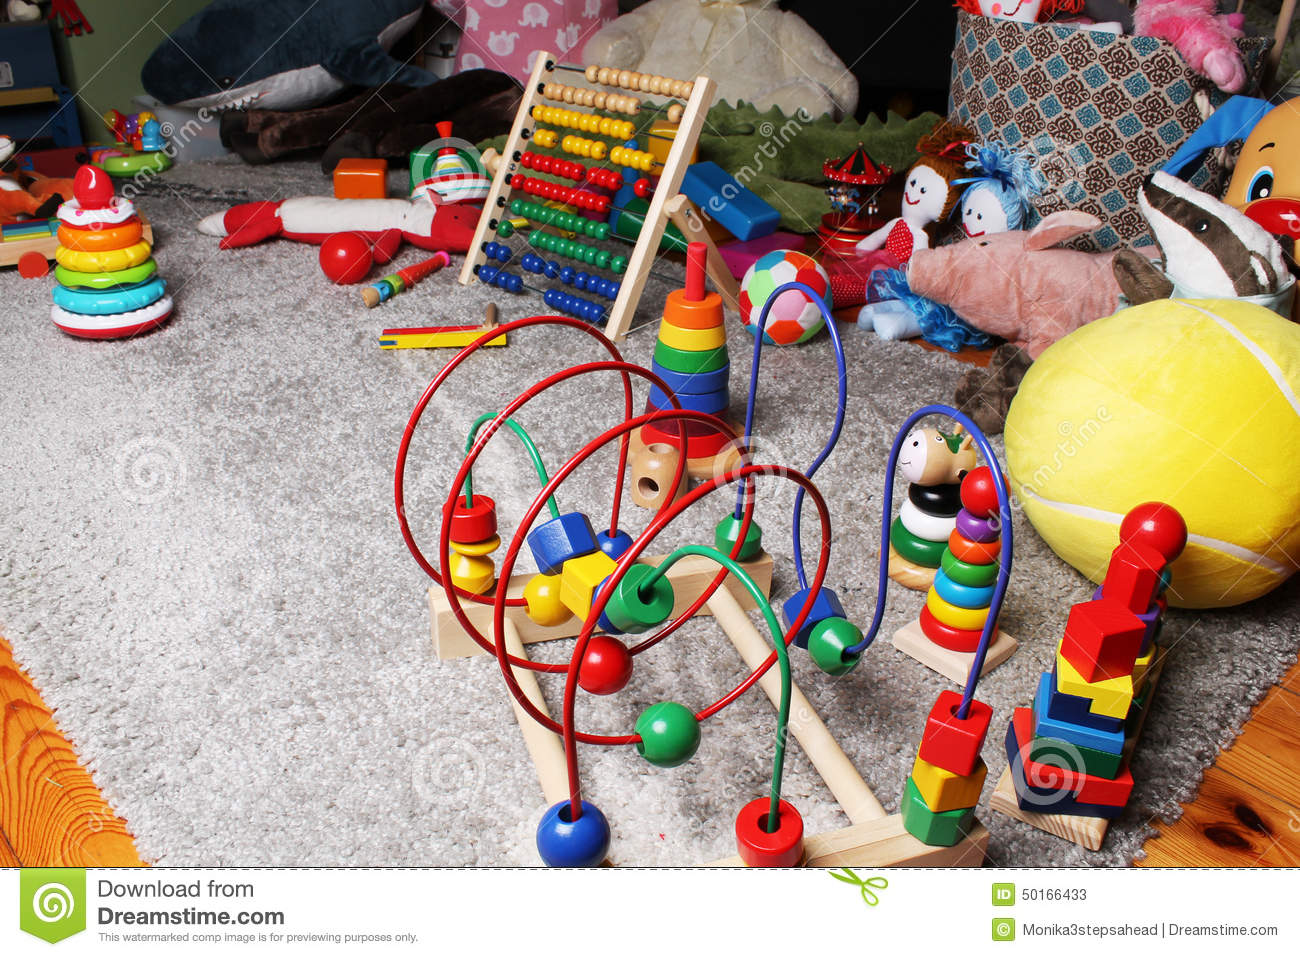 Kids Room With Toys toys in kids room on the floor stock photo - image: 50166433